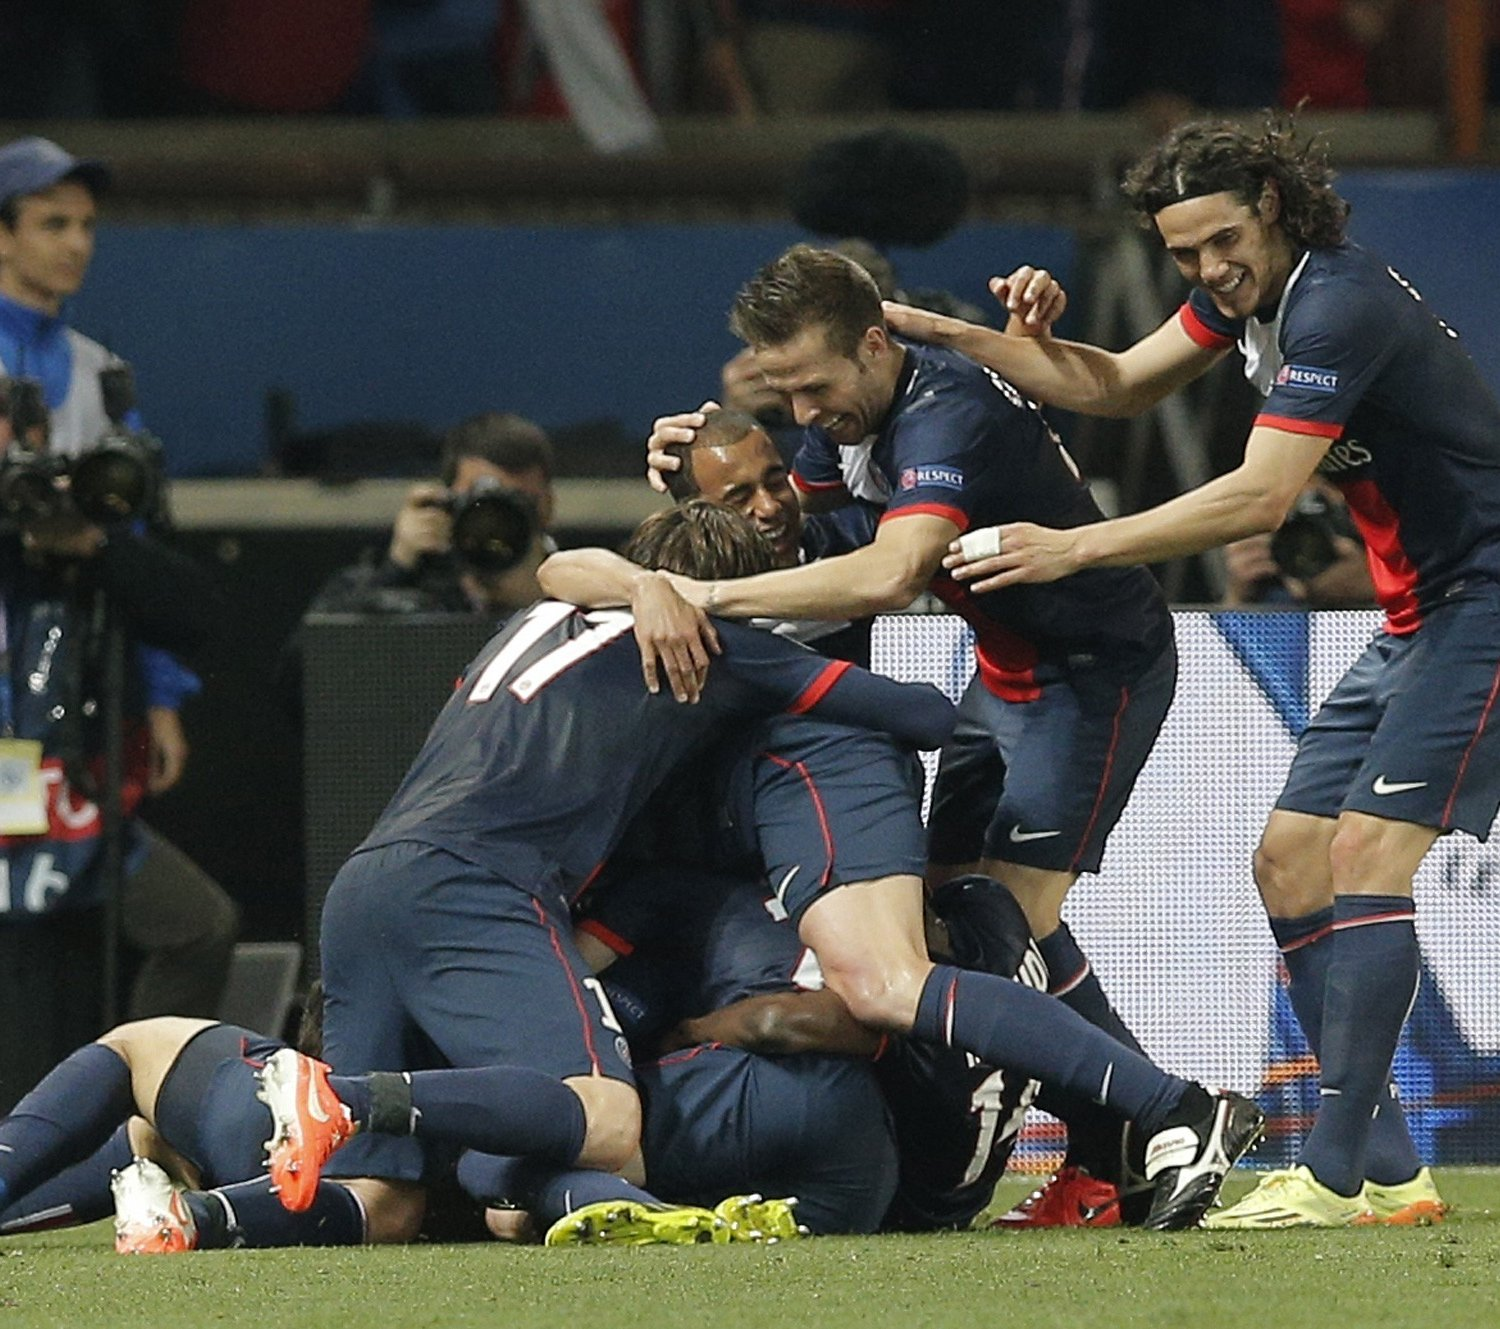 Psg Vs Chelsea Live Score Highlights From Champions: Chelsea Vs. PSG: Date, Time, Live Stream, TV Info And